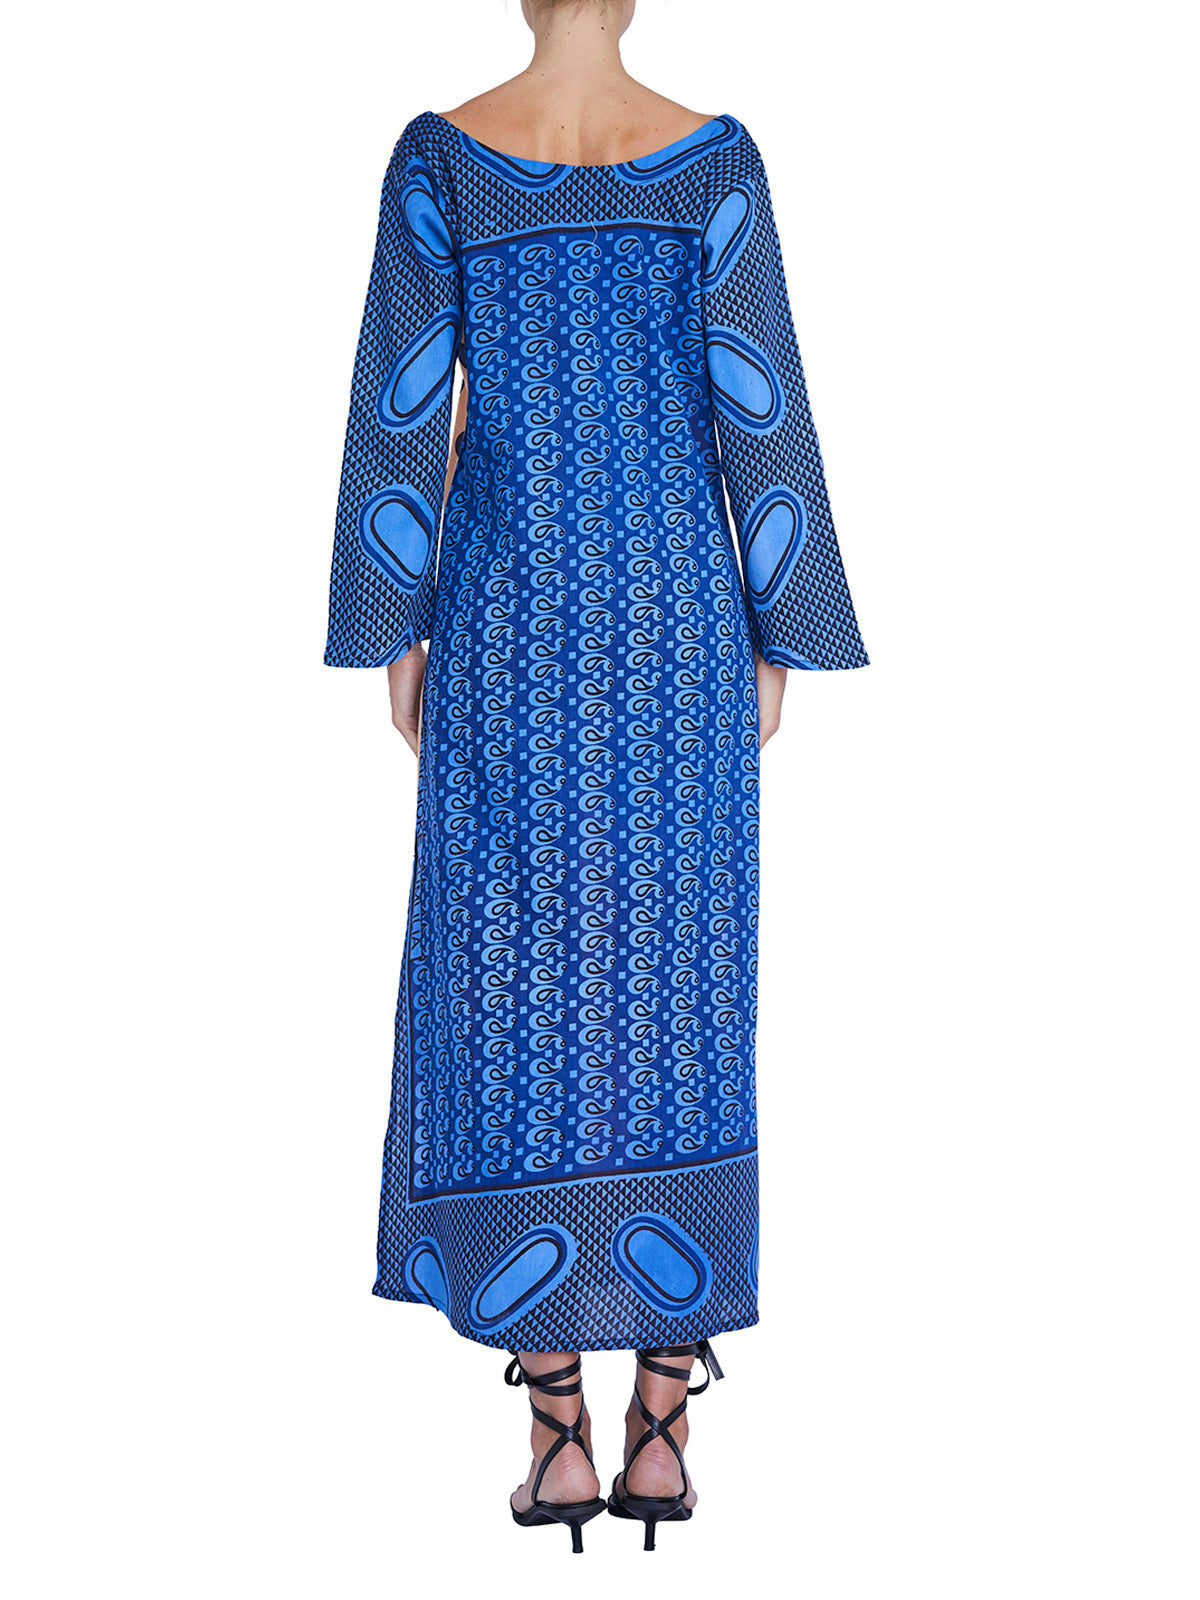 Kenya Kaweria Kanga Dress